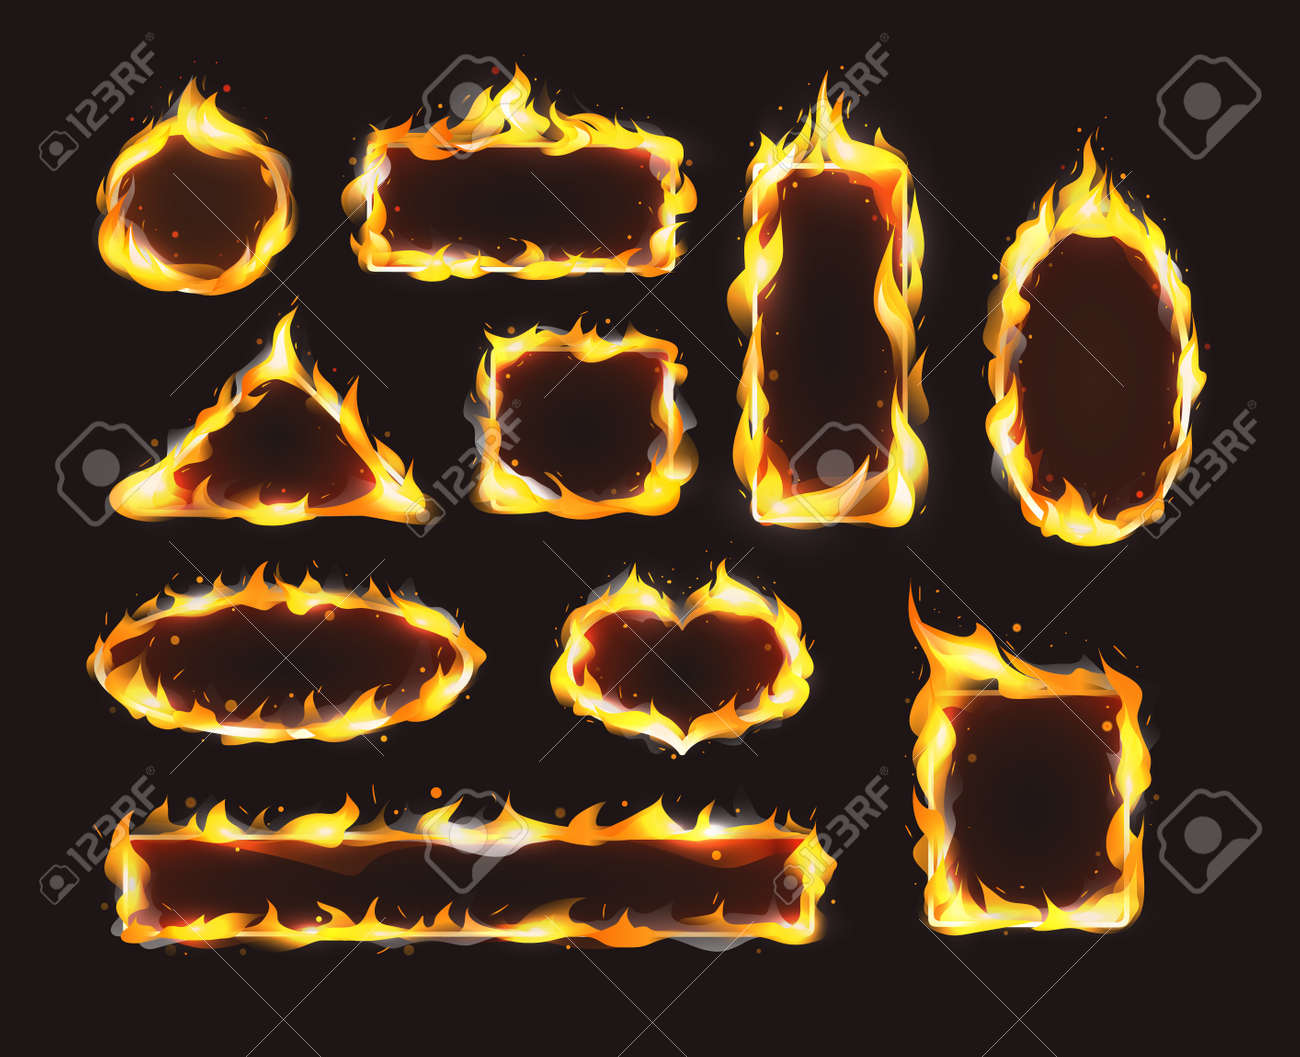 Red realistic flame frame set. Flames of various shapes with special light effect on dark background. - 146818682